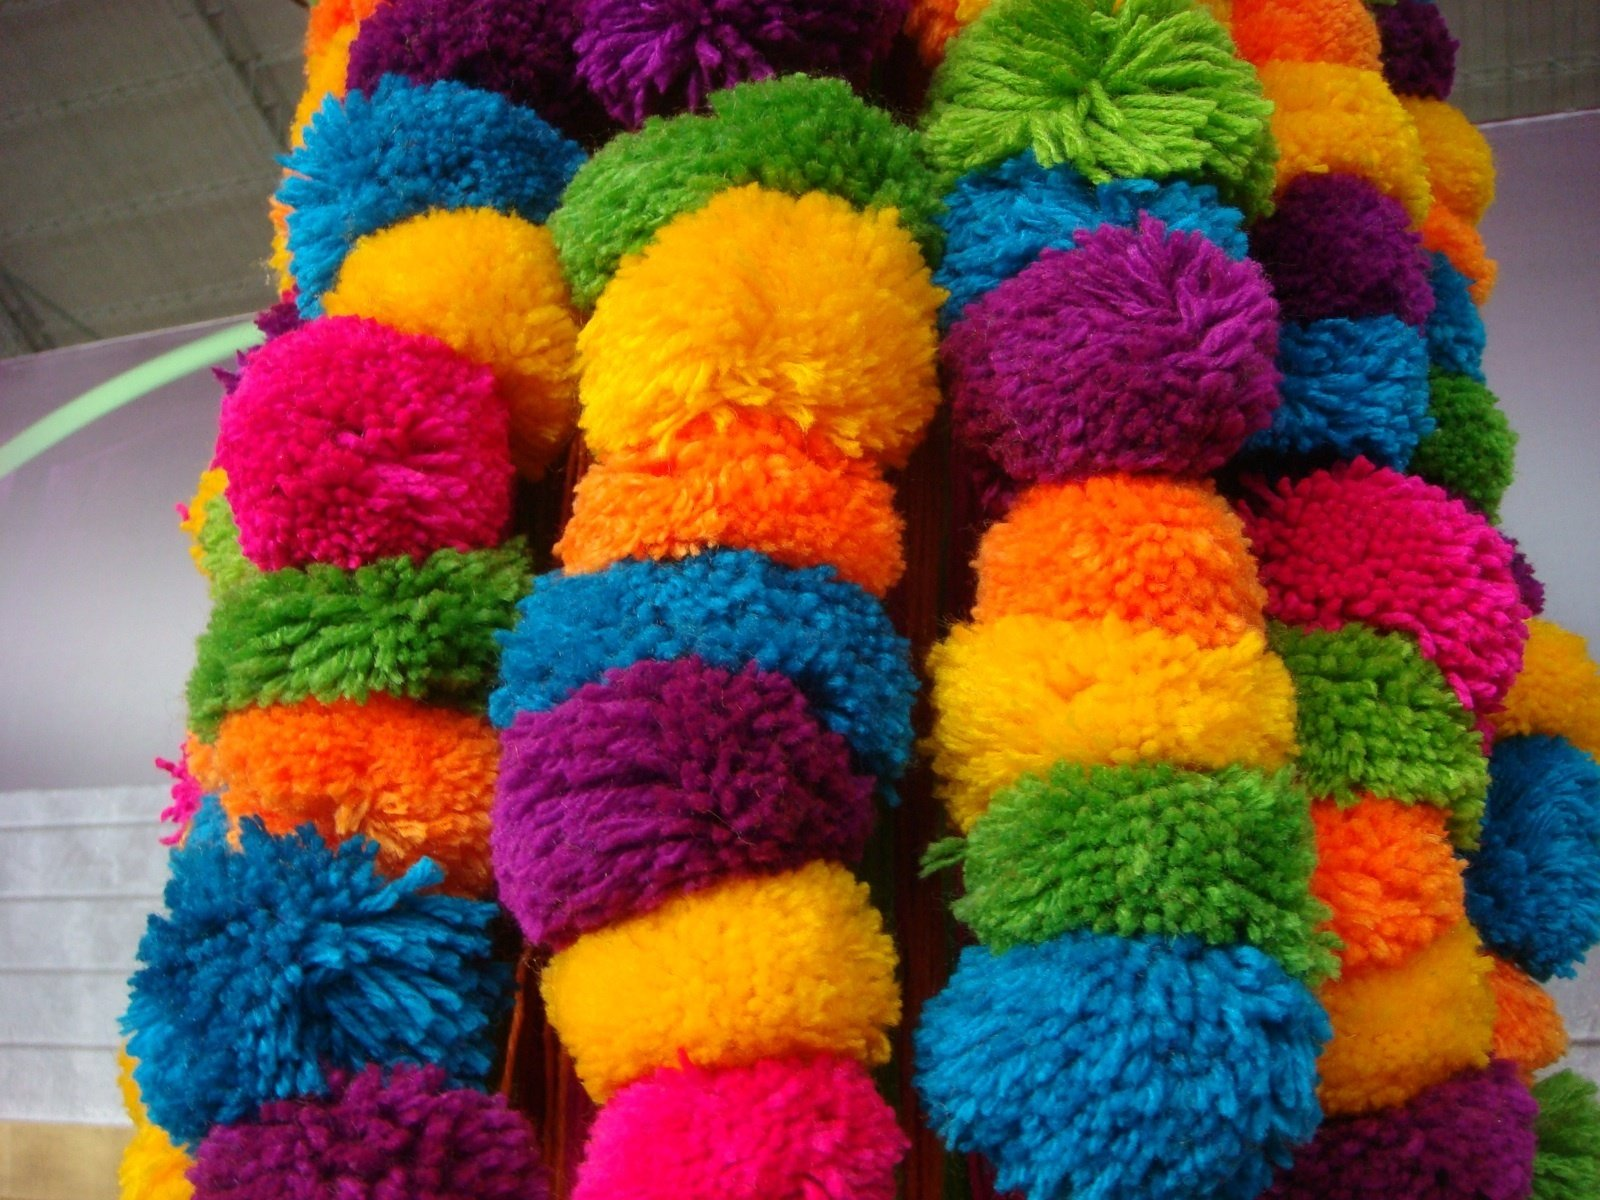 Colorful pompoms in all the vibrant colors found throughout the fair.  Photo 16 of 32 in Color Me Mad! from Peru Gift Show 2011